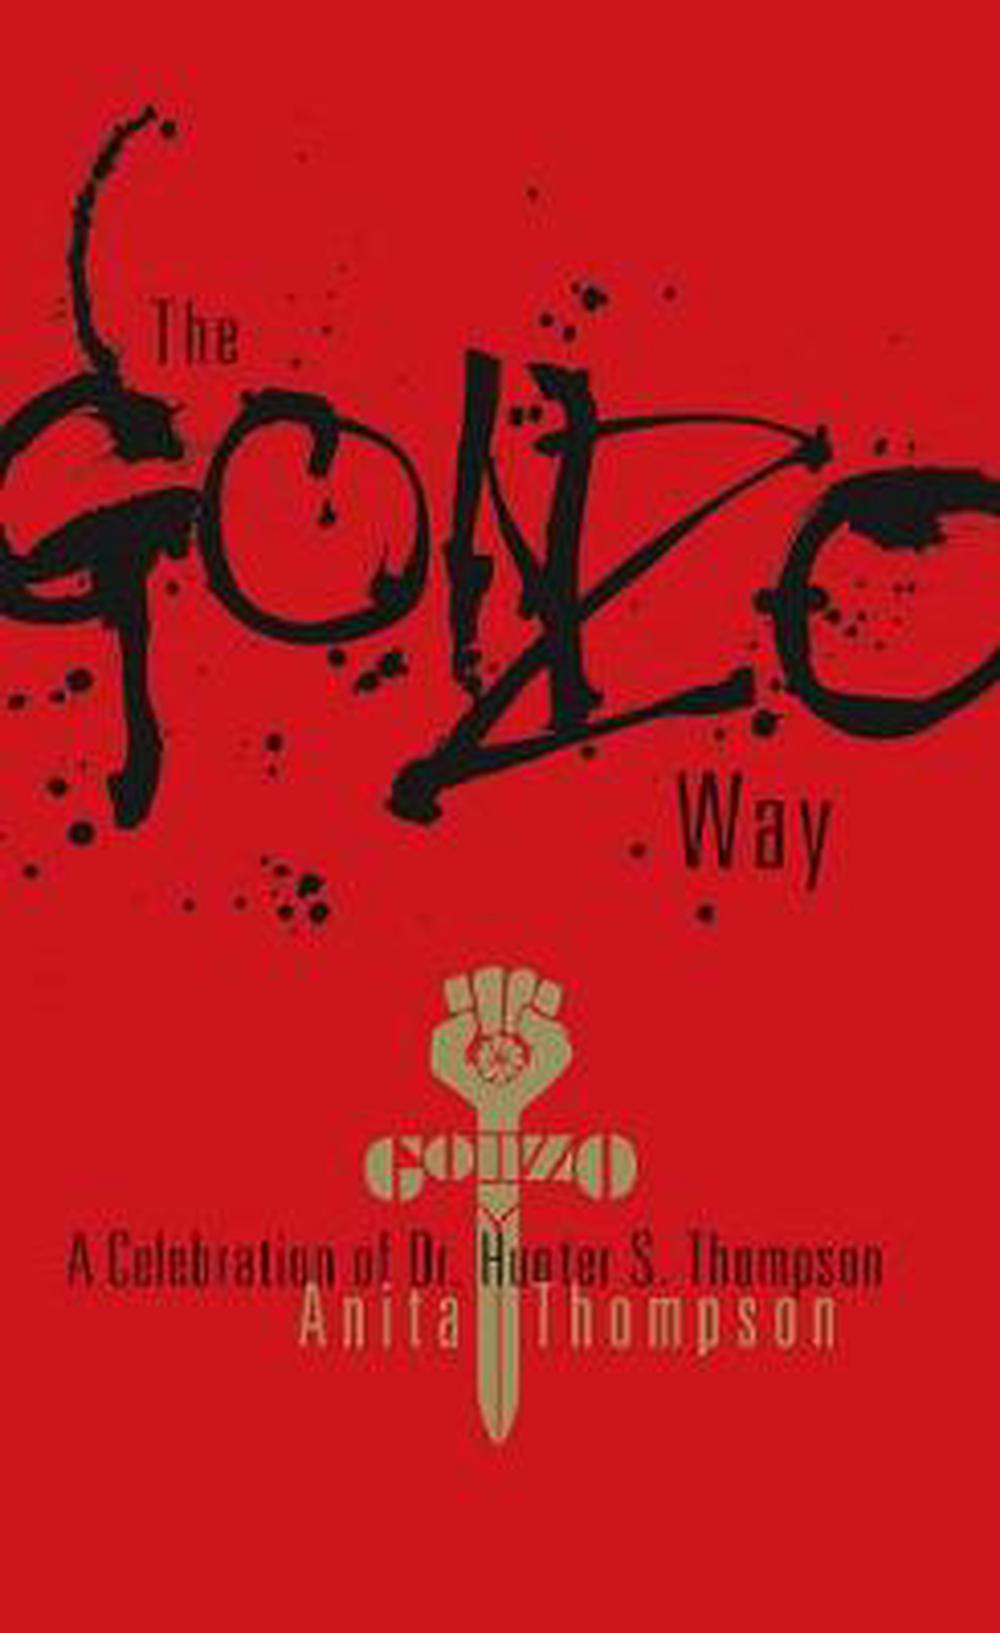 The Gonzo Way A Celebration Of Dr Hunter S Thompson By Anita